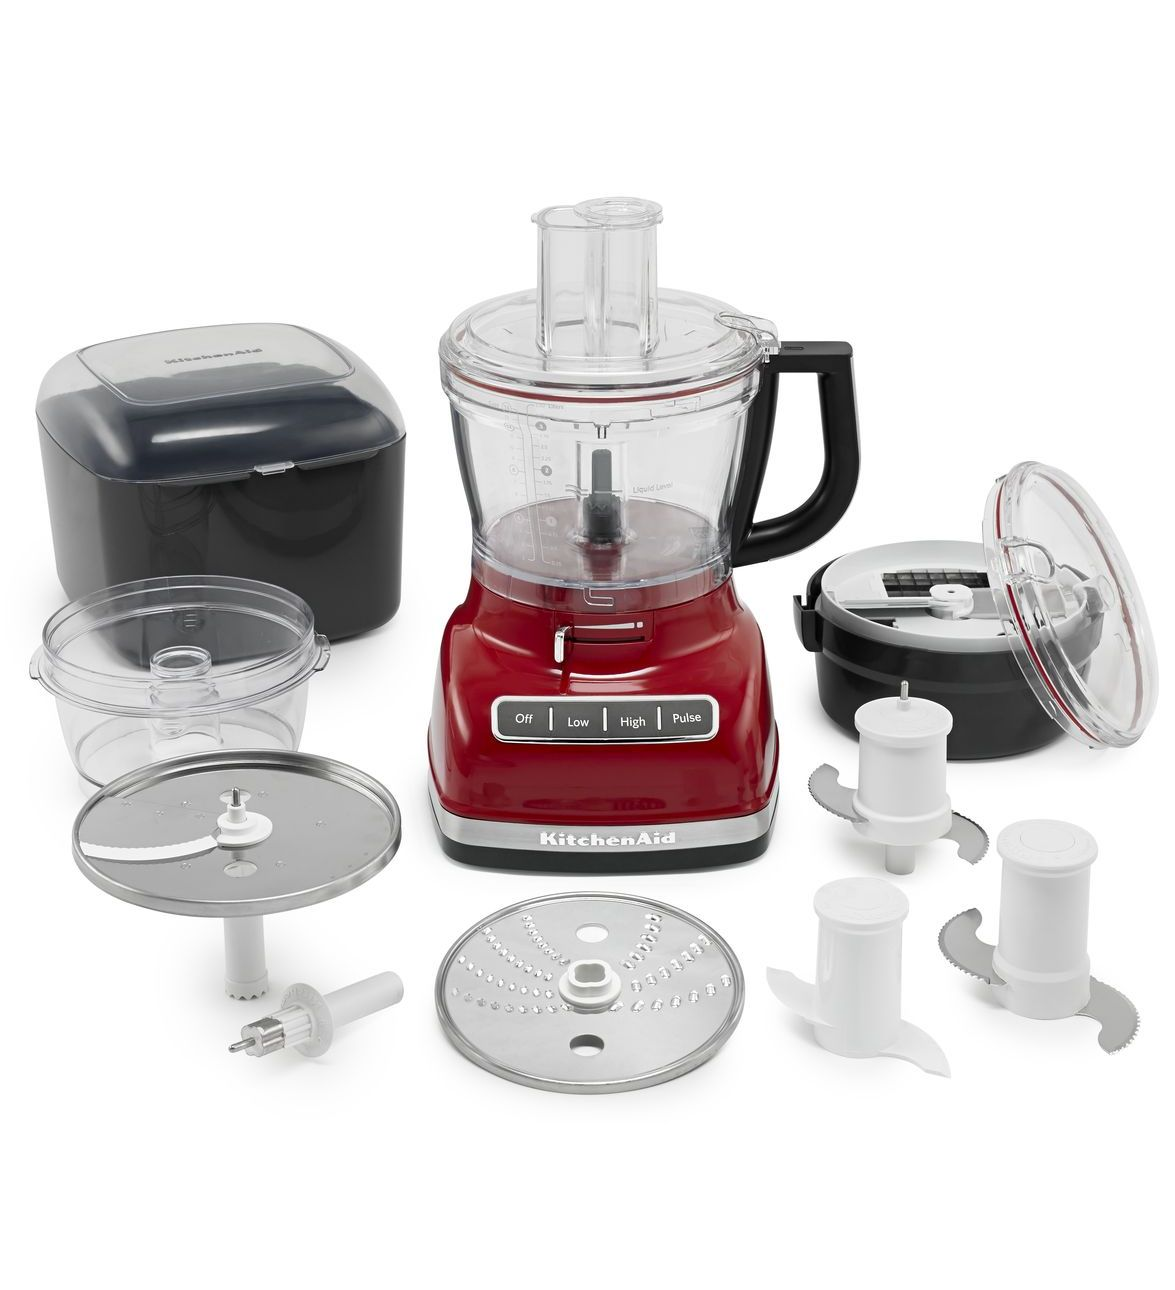 KitchenAid-14-Cup-Food-Processor-with-Commercial-Style-Dicing-Kit-KFP1466 thumbnail 4